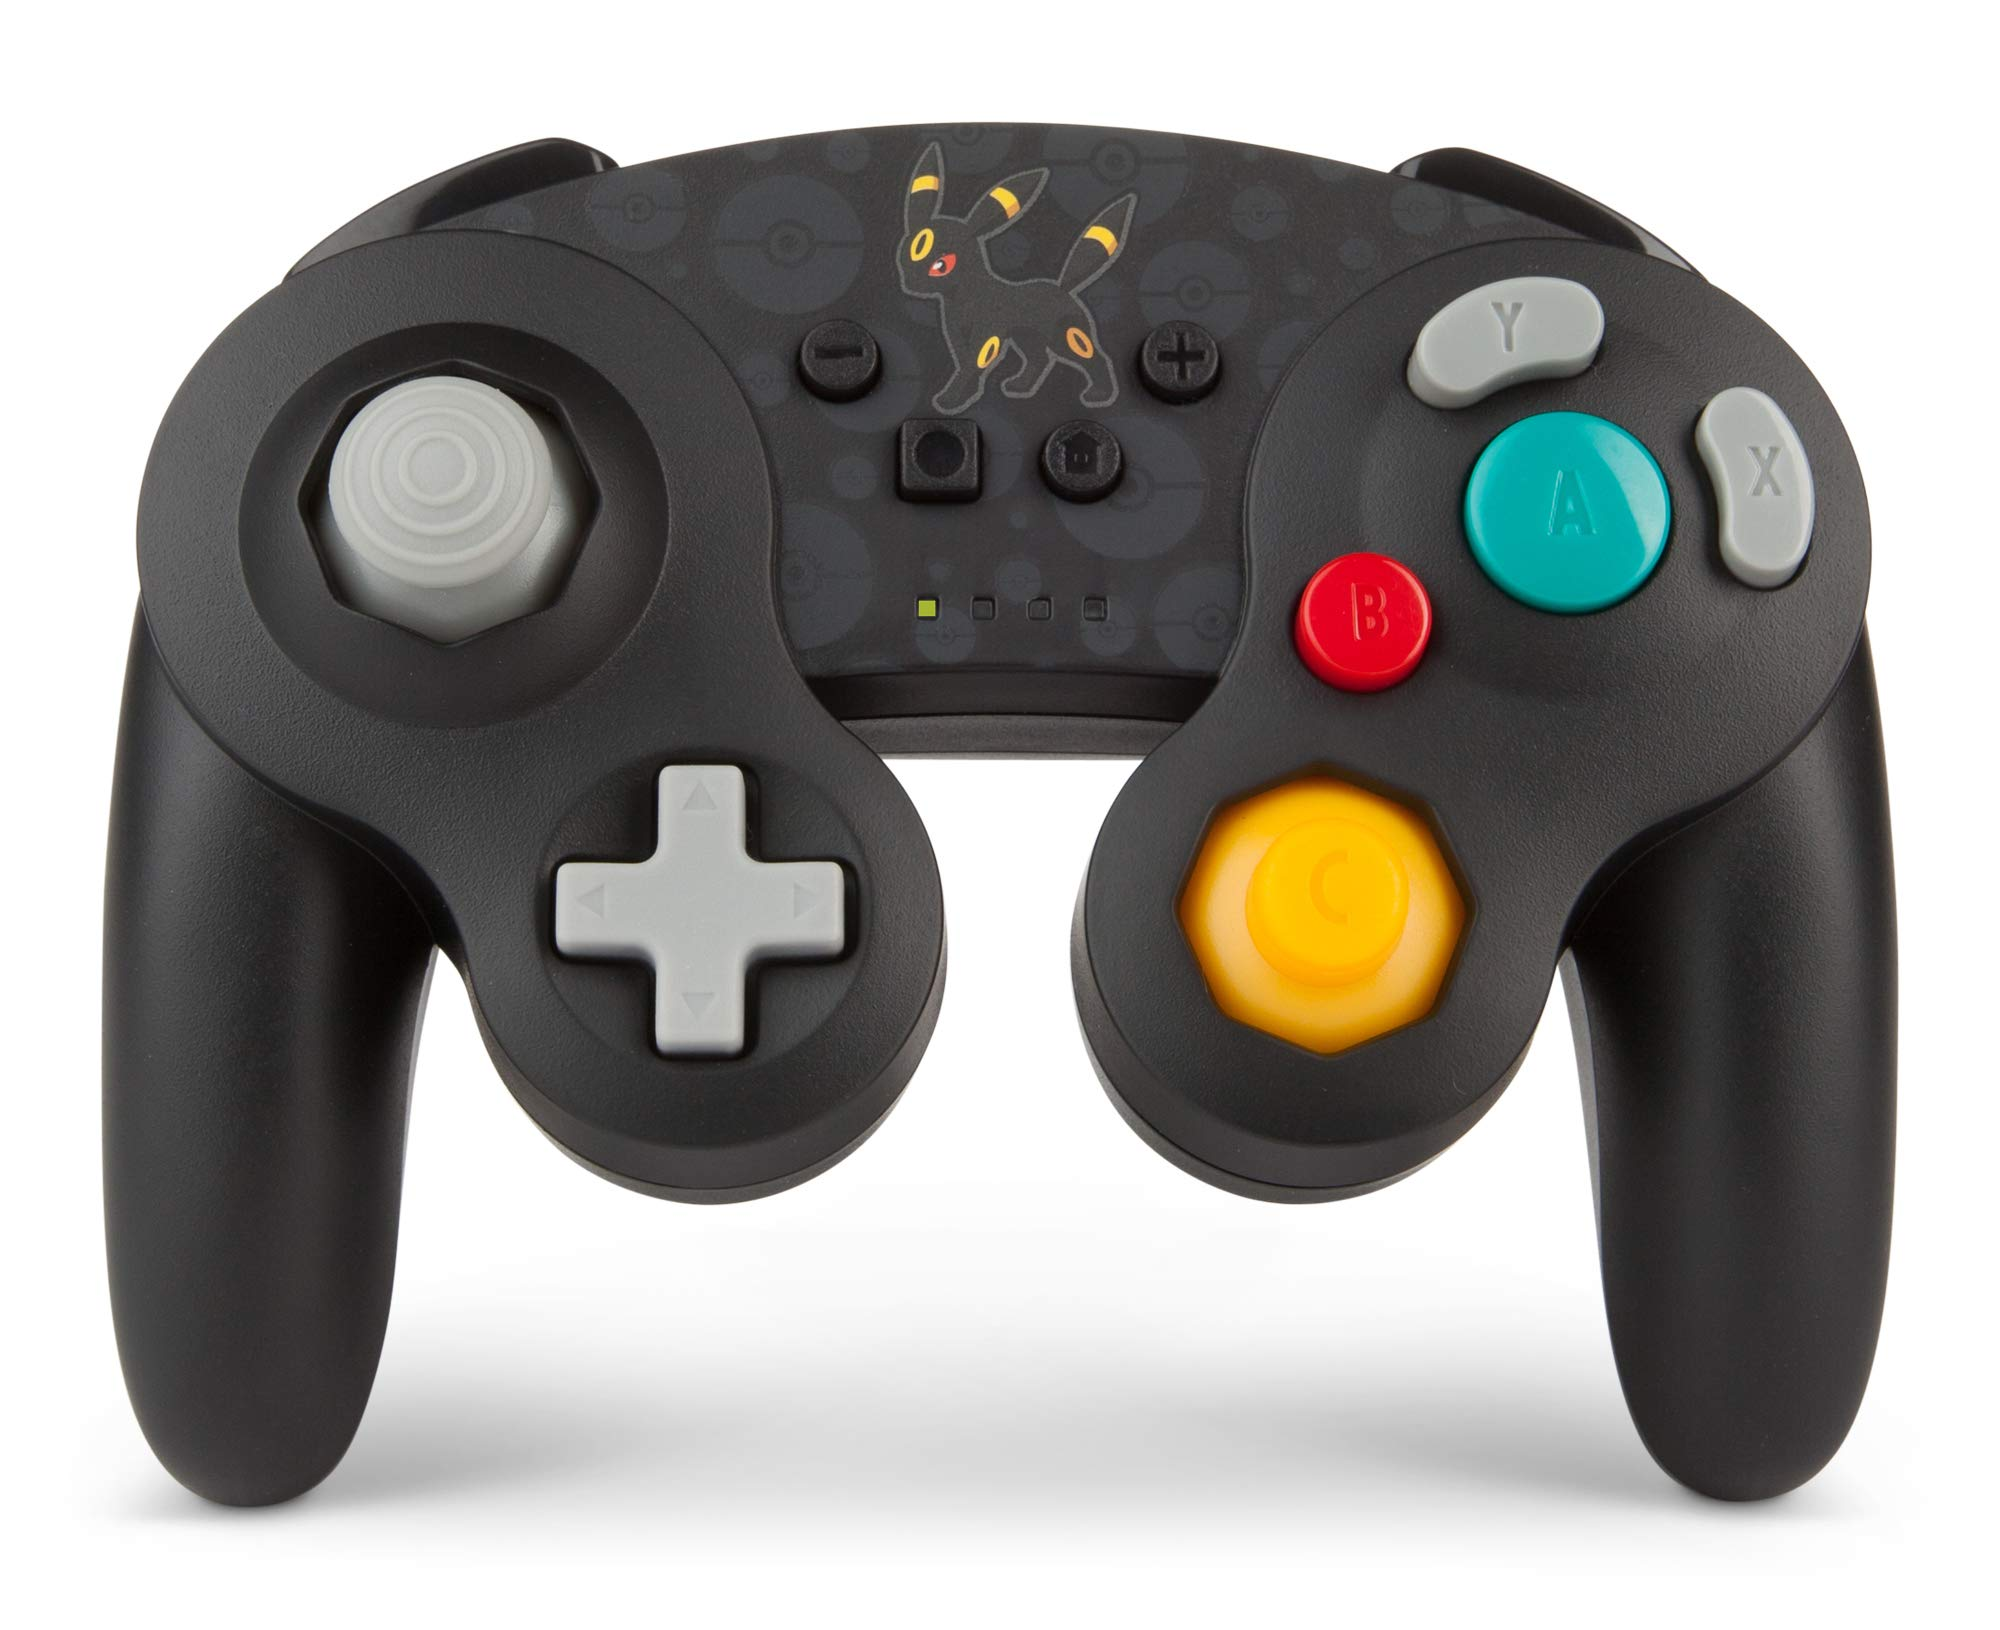 PowerA Pokemon Wireless GameCube Style Controller for Nintendo Switch - Umbreon